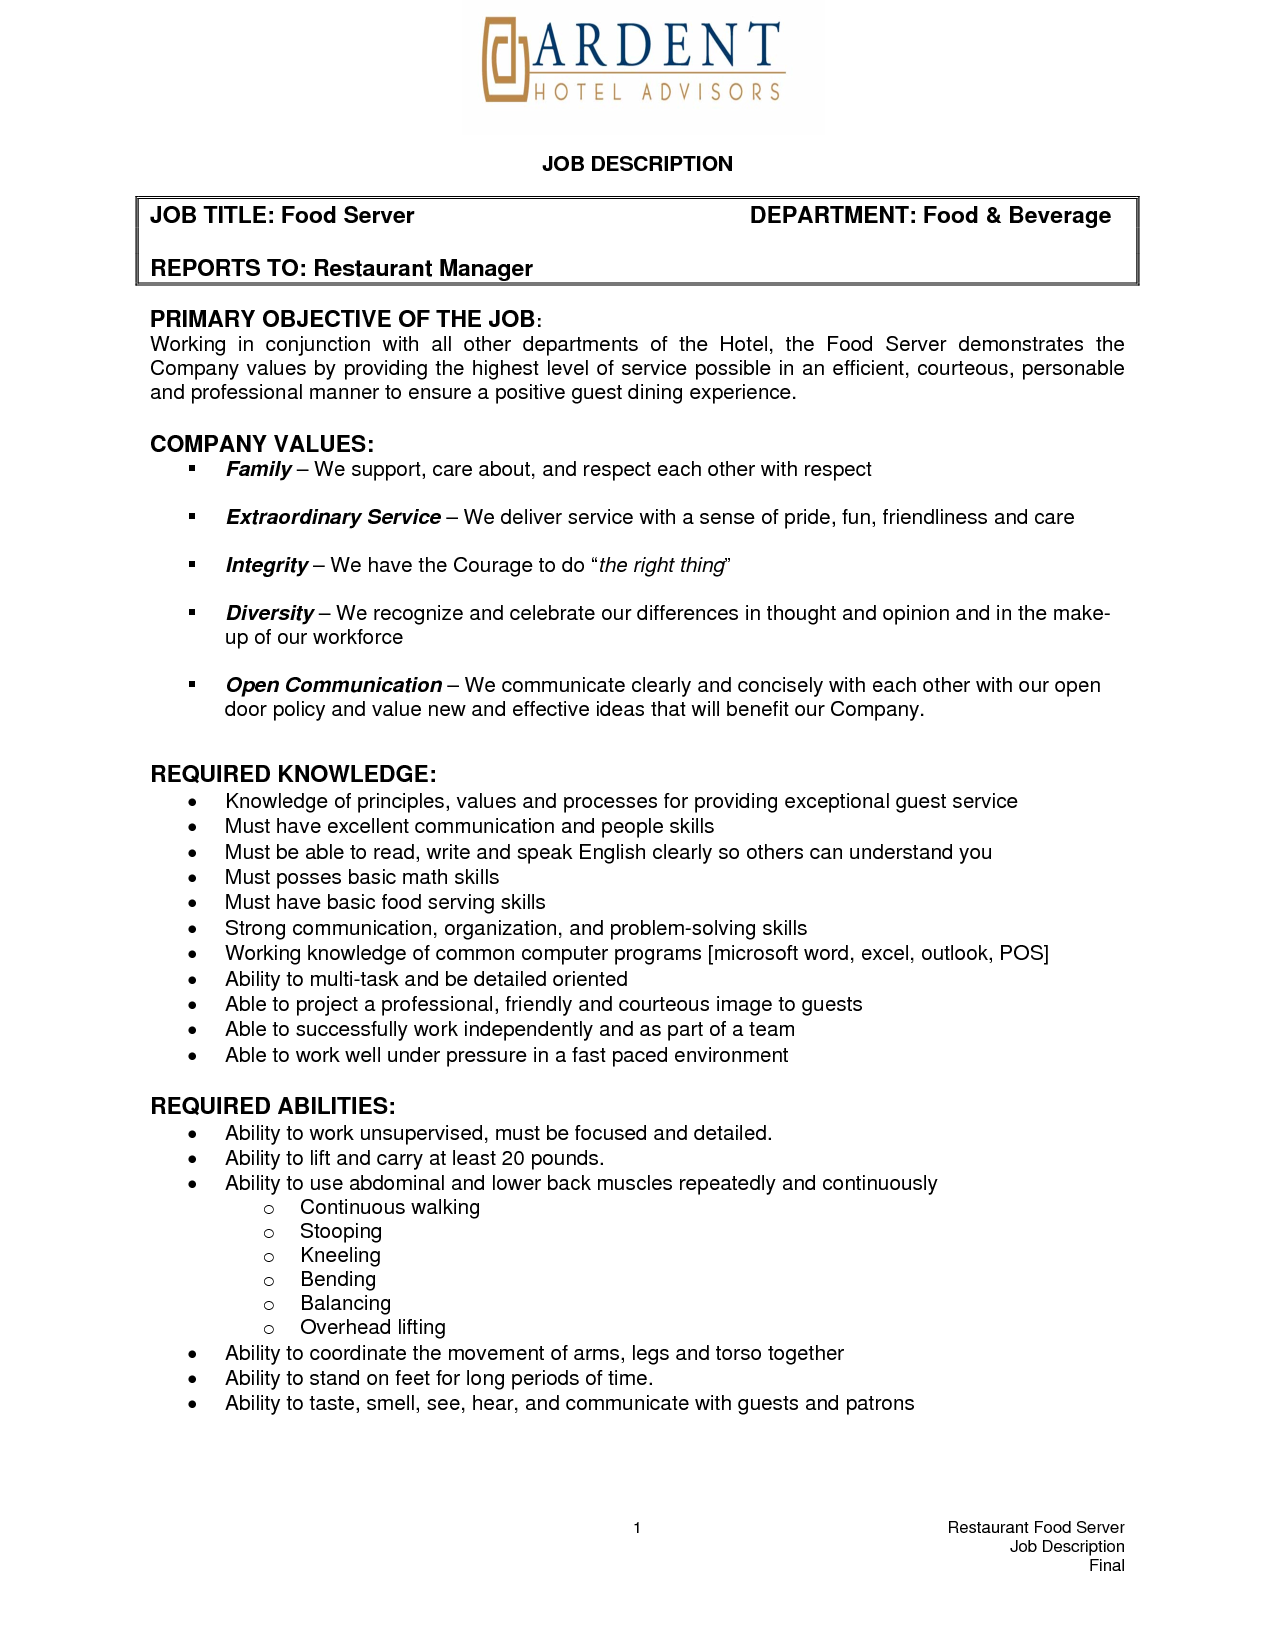 data entry specialist job description Data Entry Job Description For Resume